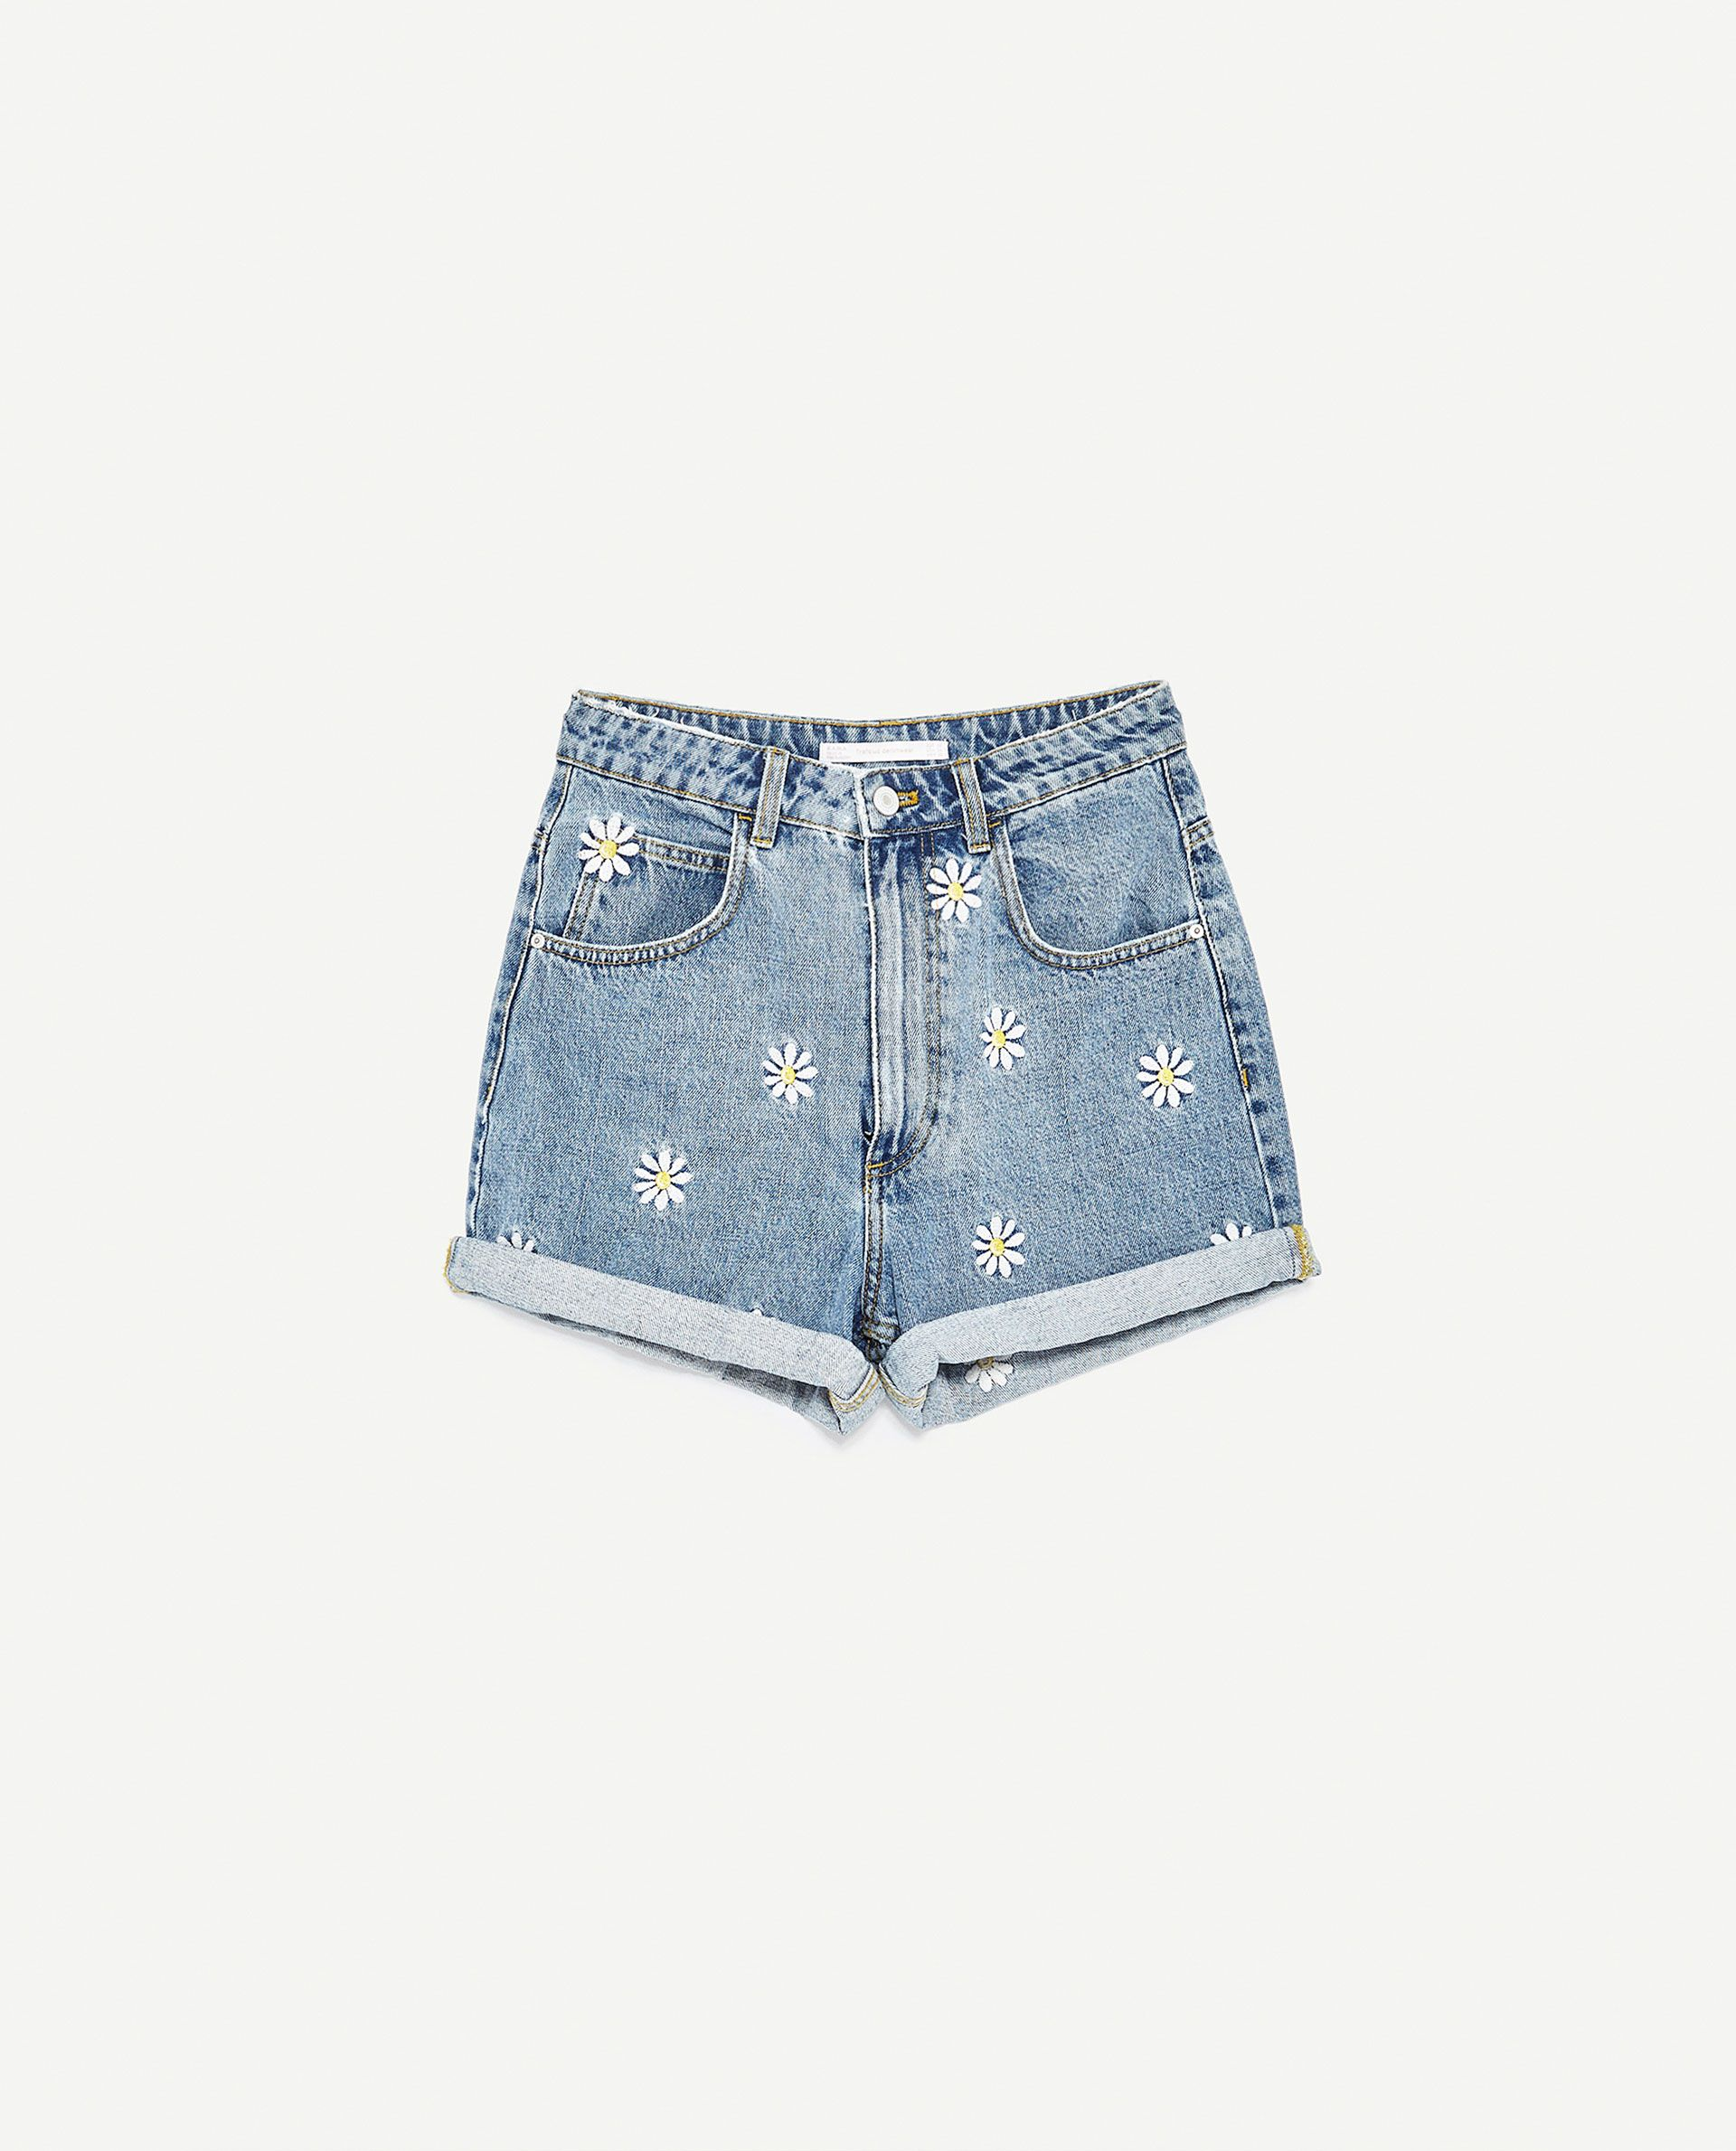 0c03c2ea08 BERMUDA SHORTS WITH EMBROIDERED DAISIES from Zara | Clothing in 2019 ...